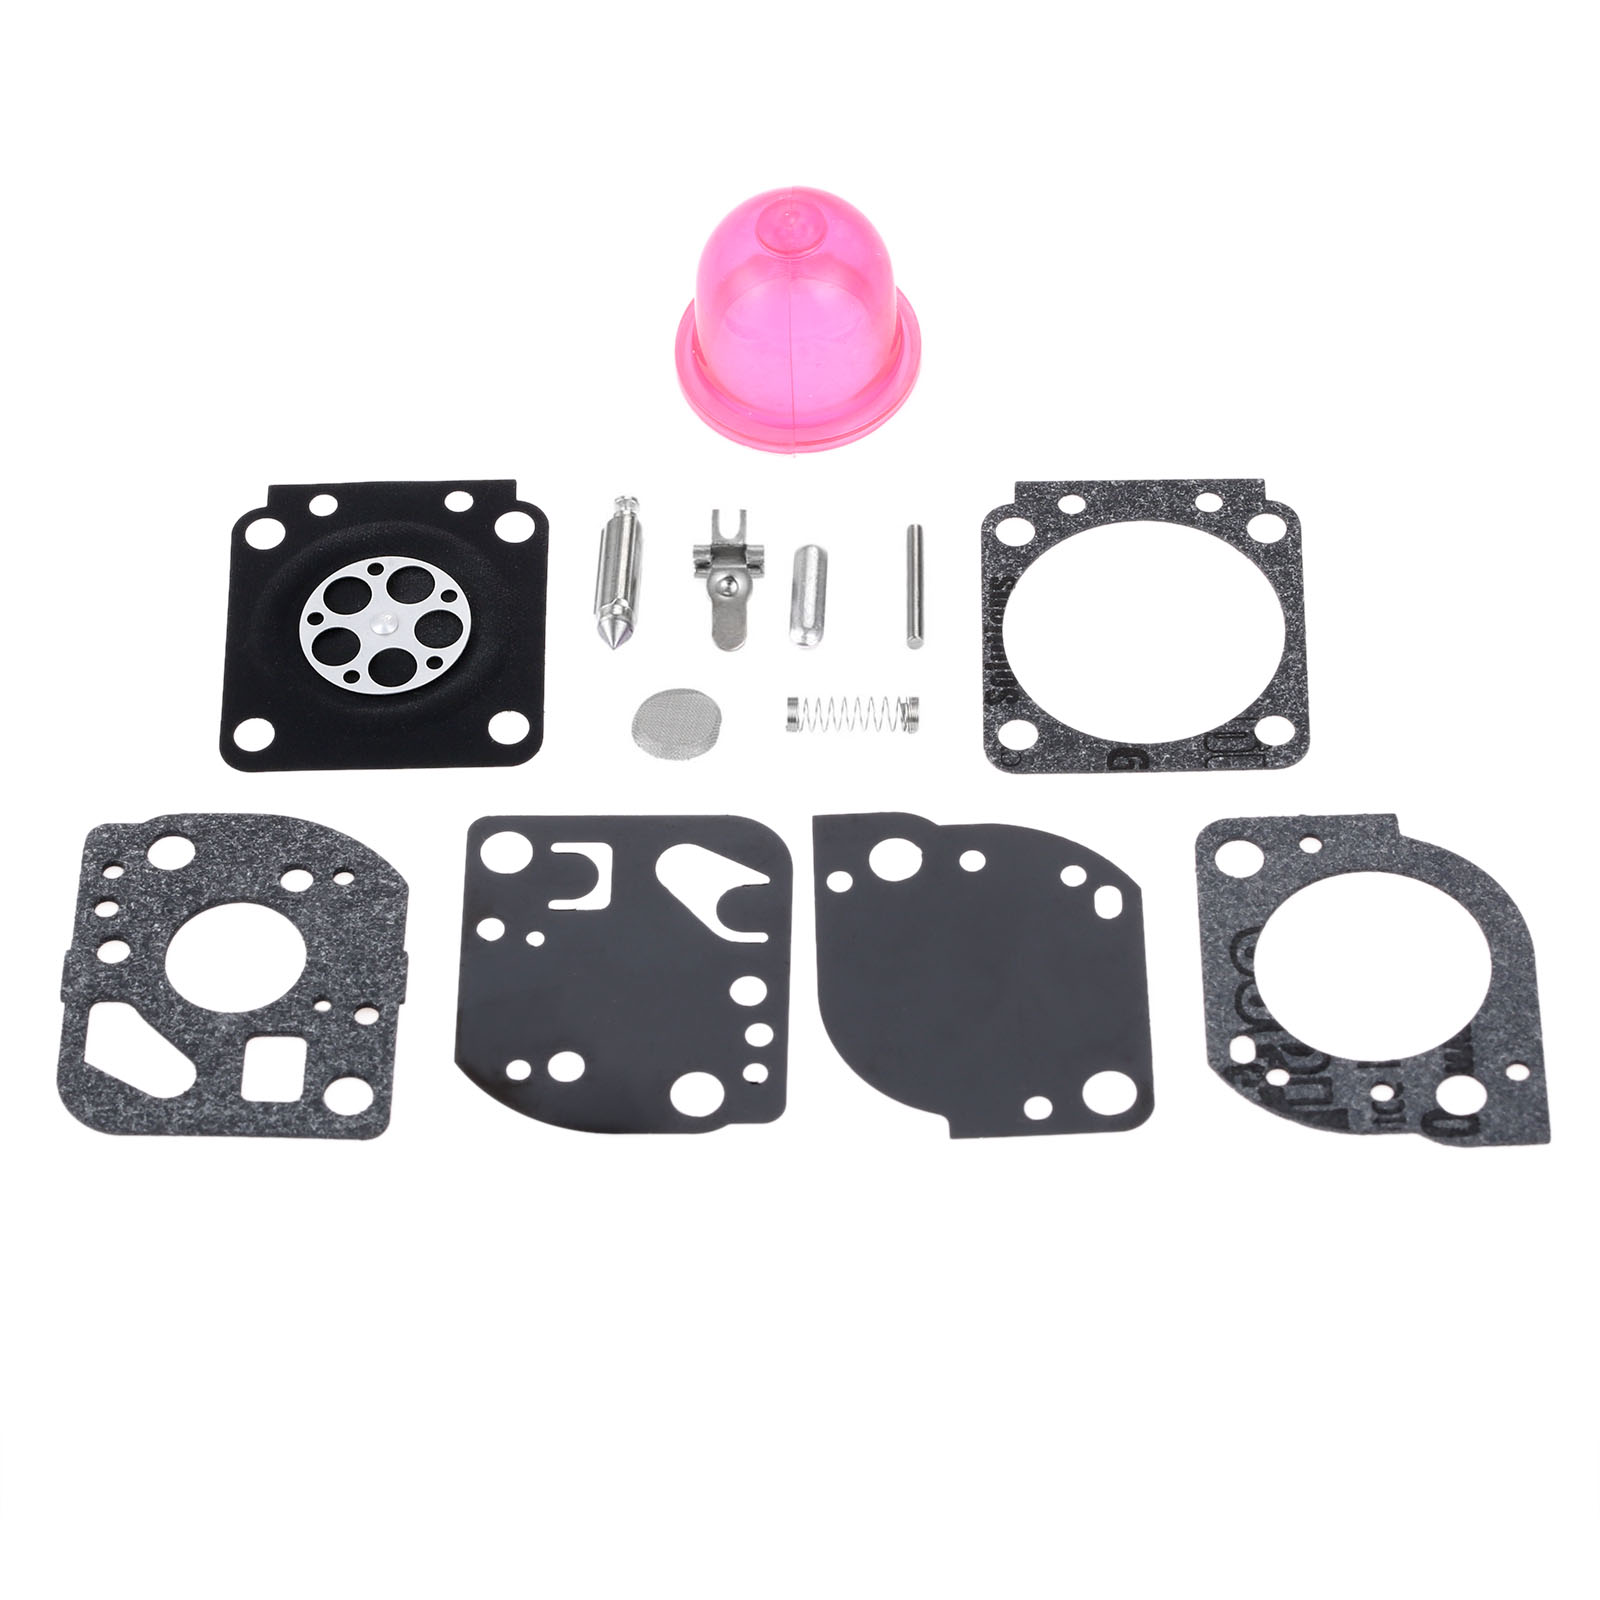 DRELD Carburetor Diaphragm Rebuild Kit for Zama RB-117 C1U-W19 Carb PP025 PP325 PP26E PP125 SM706 SM705 Trimmer Chainsaw Parts carburetor carb rebuild kit zama rb 42 for stihl 08 070 090 ts350 ts360 tillotson rk 83hl